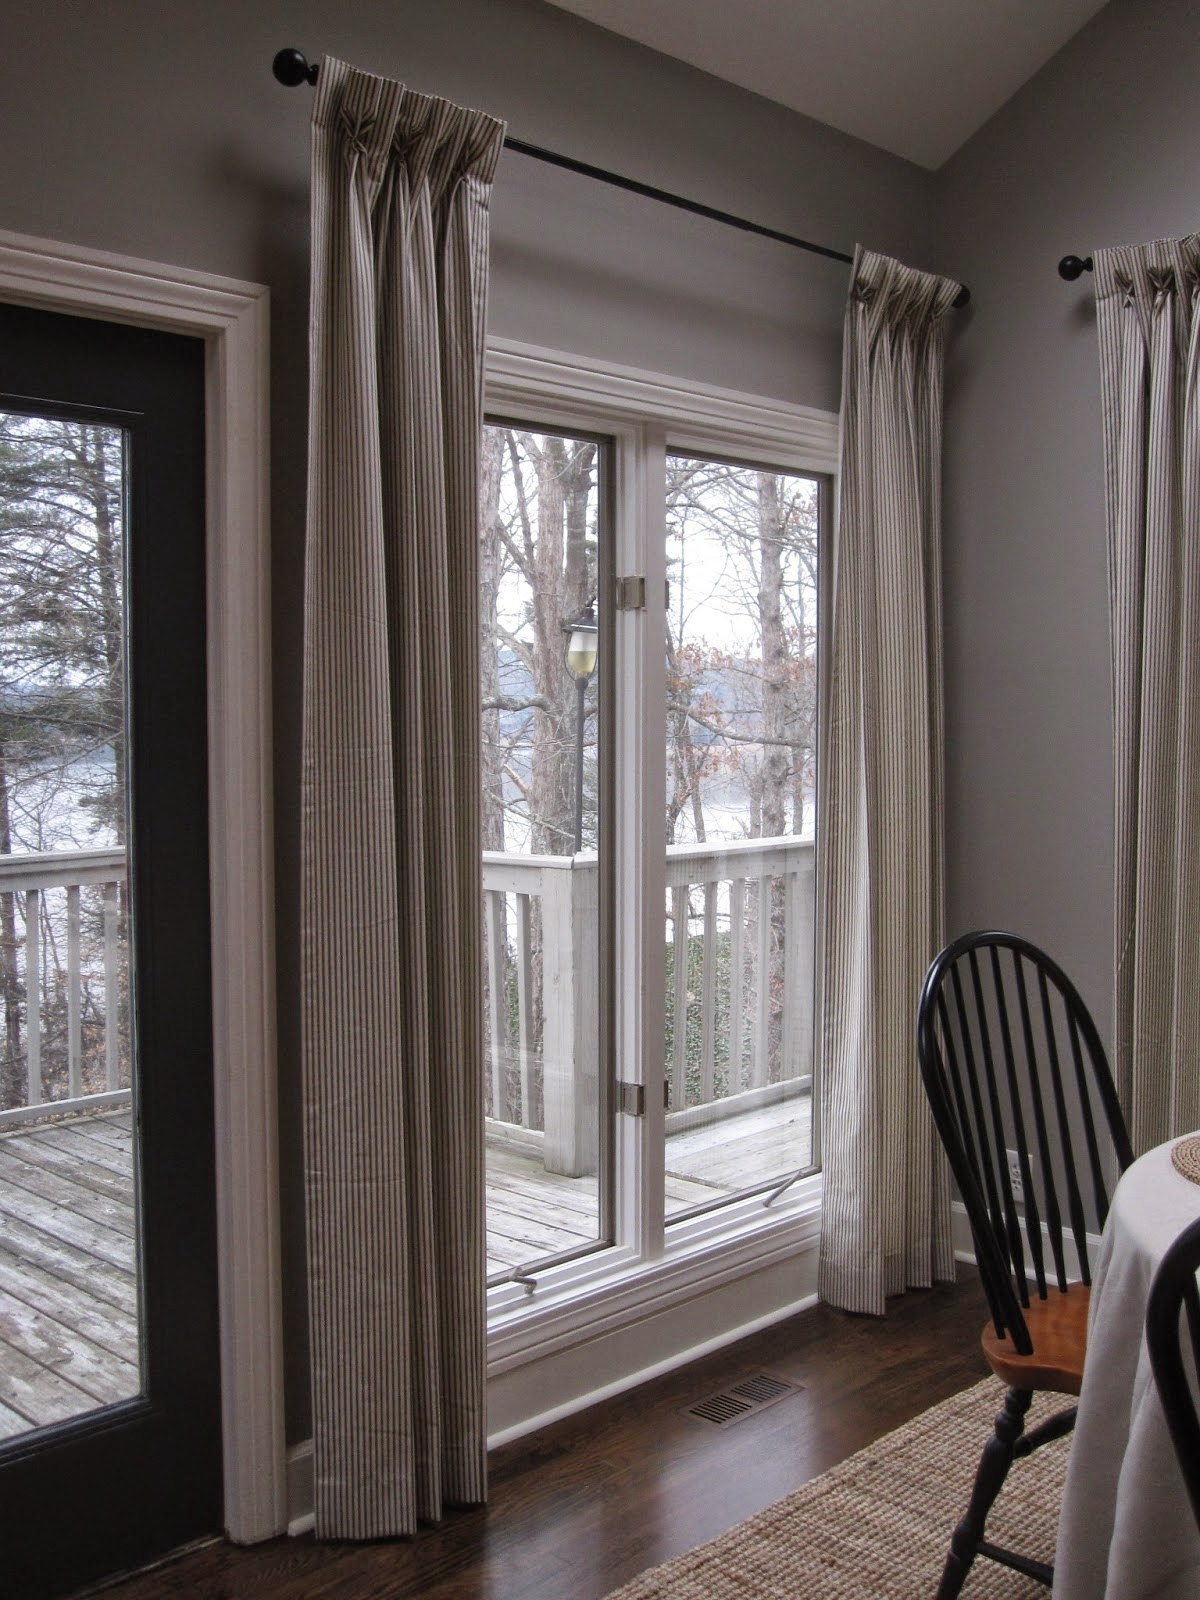 Window Treatment Ideas: Window Treatments For French Doors